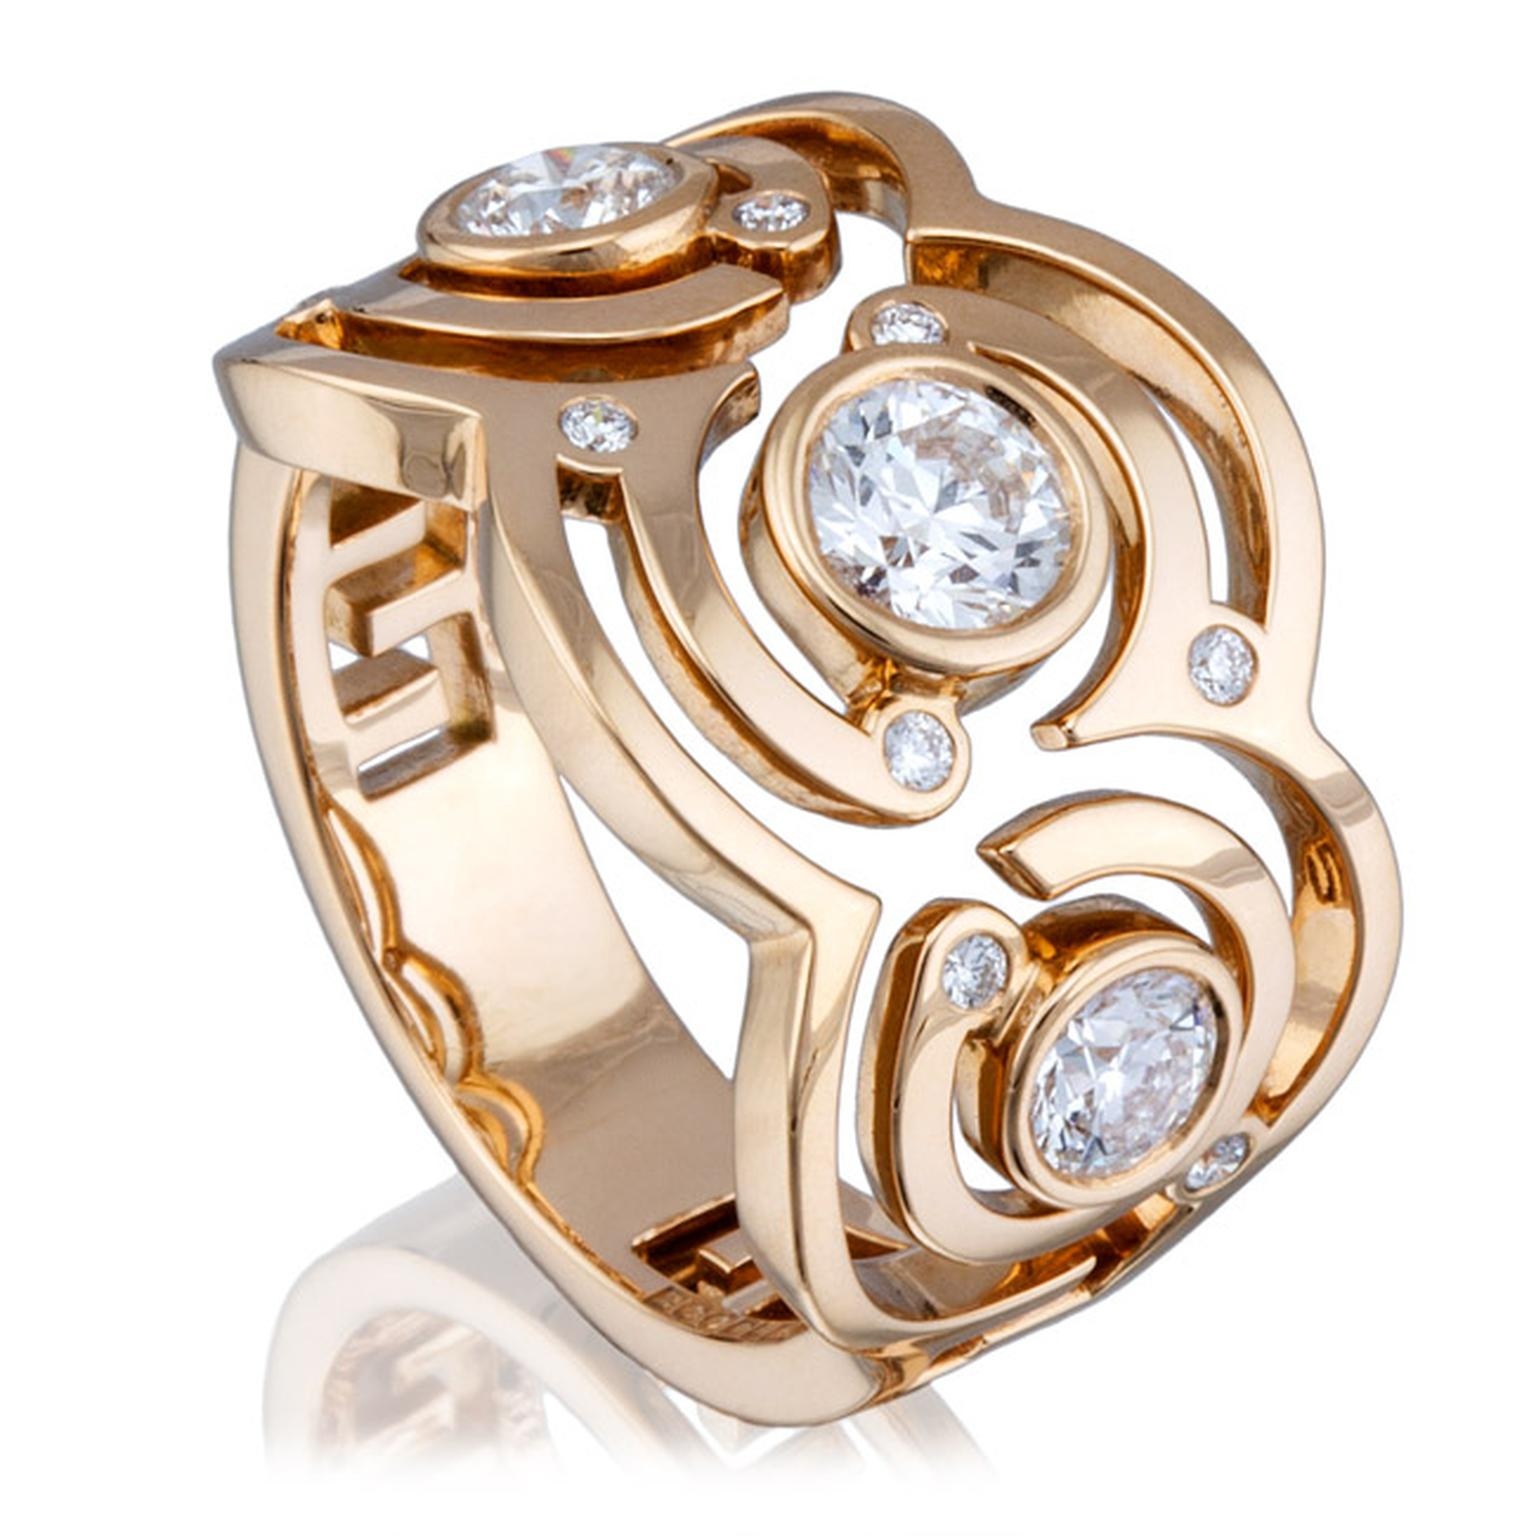 Boodles-Maze-RG-Ring-Main